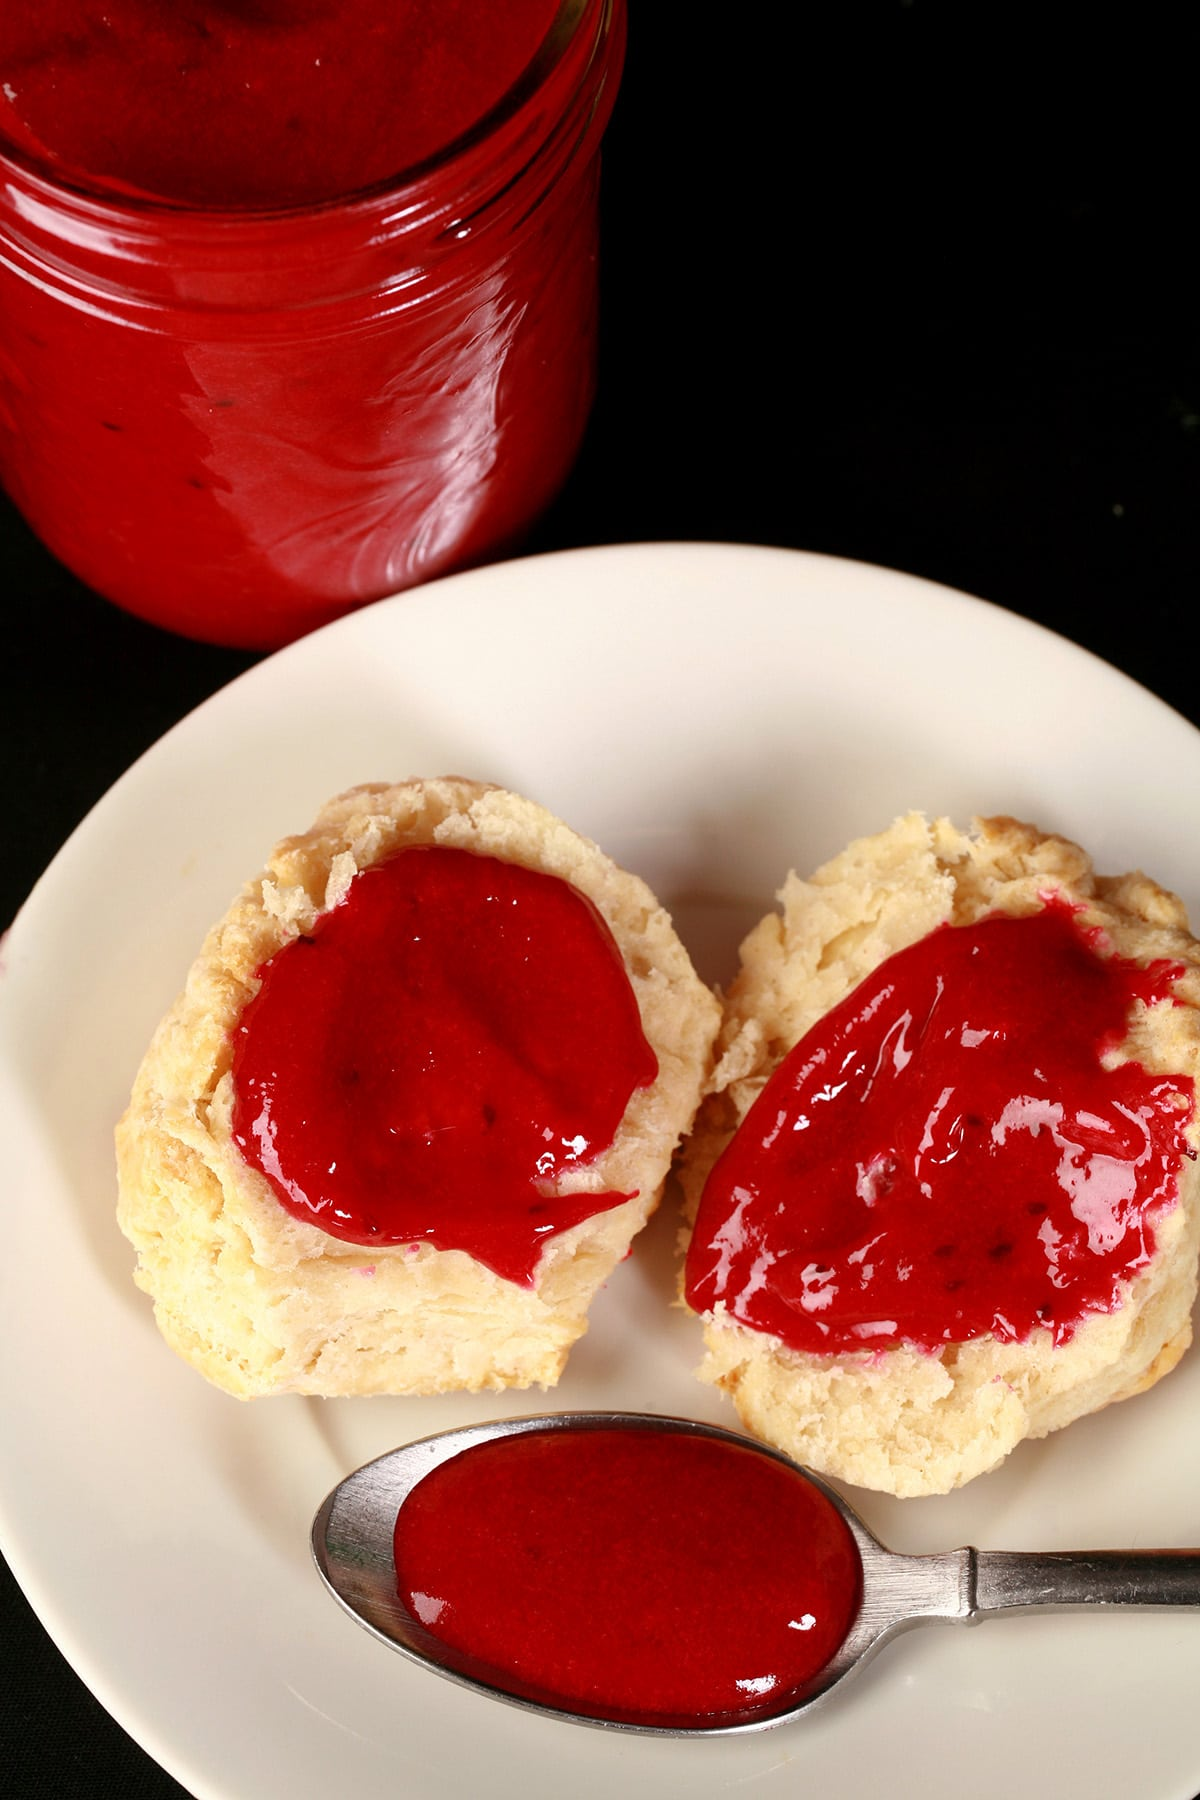 2 biscuits topped with blackcurrant curd, along with a spoon of the curd on the same plate.